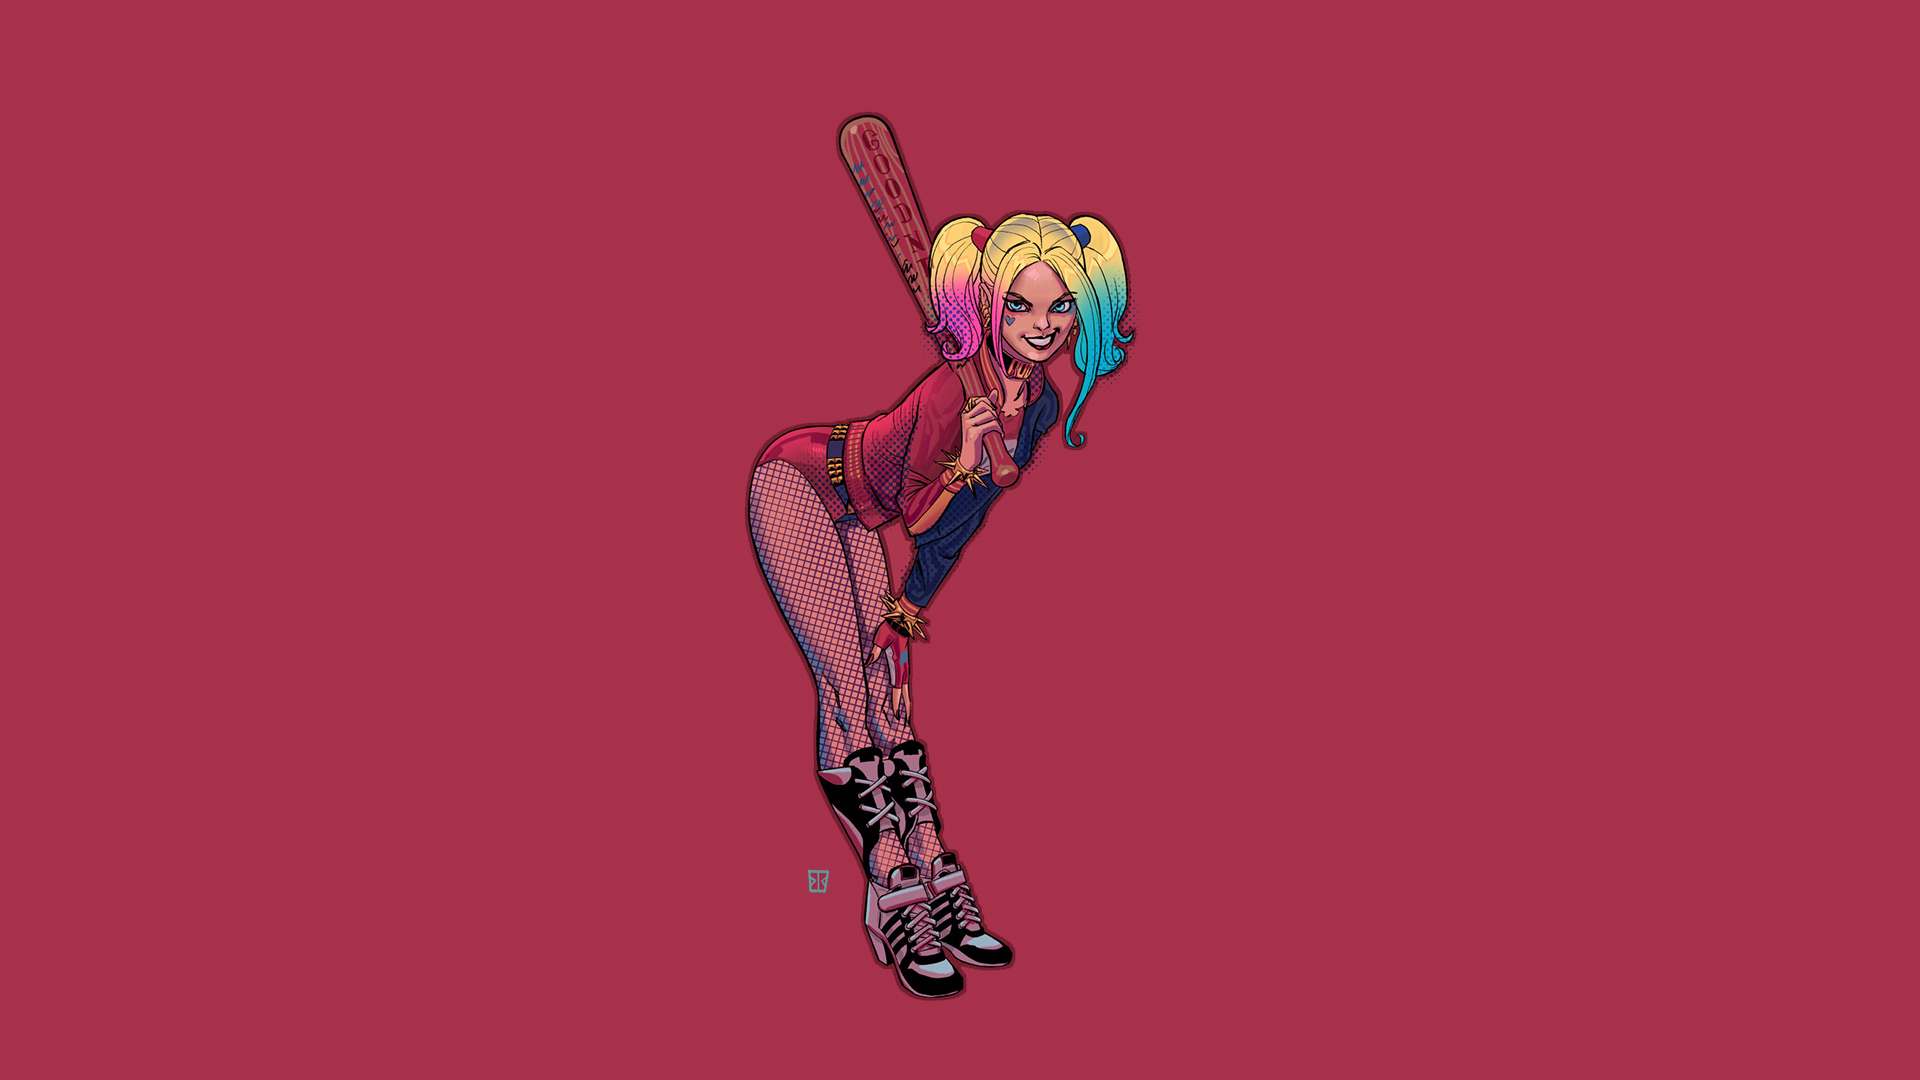 Harley Quinn Artwork Wallpaper Hd Superheroes 4k Wallpapers Images Photos And Background